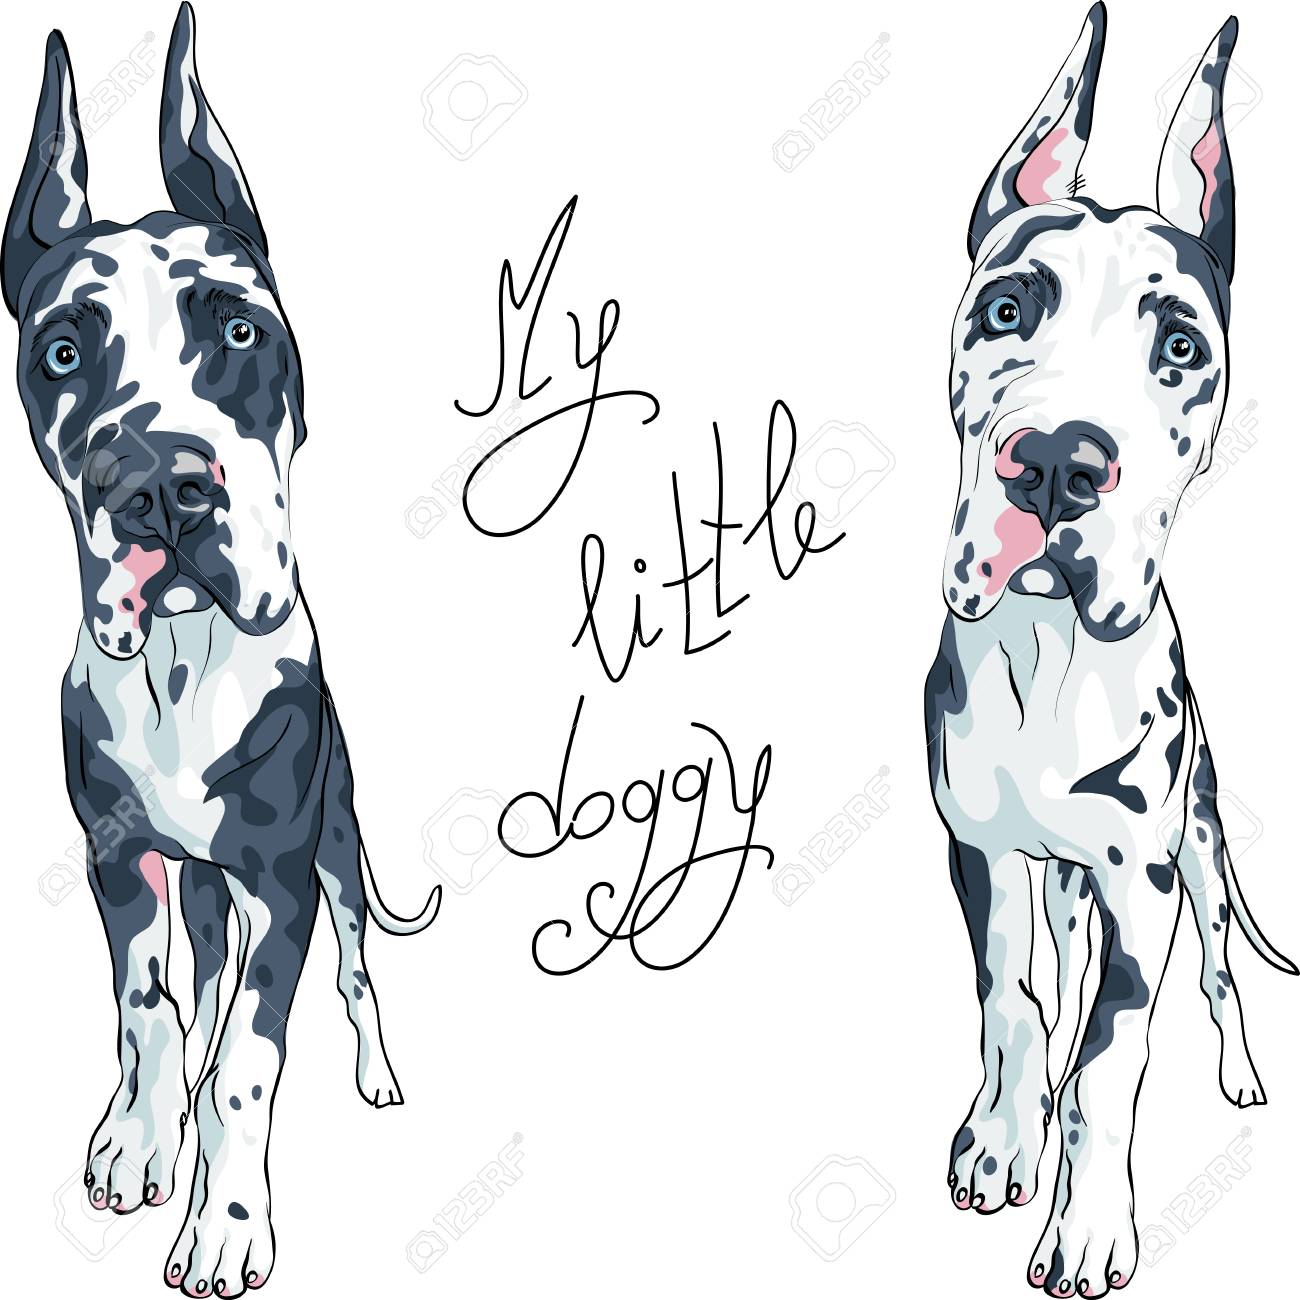 Vector Spotted Dog Harlequin Great Dane Puppy With Cropped Ears Royalty Free Cliparts Vectors And Stock Illustration Image 121119874